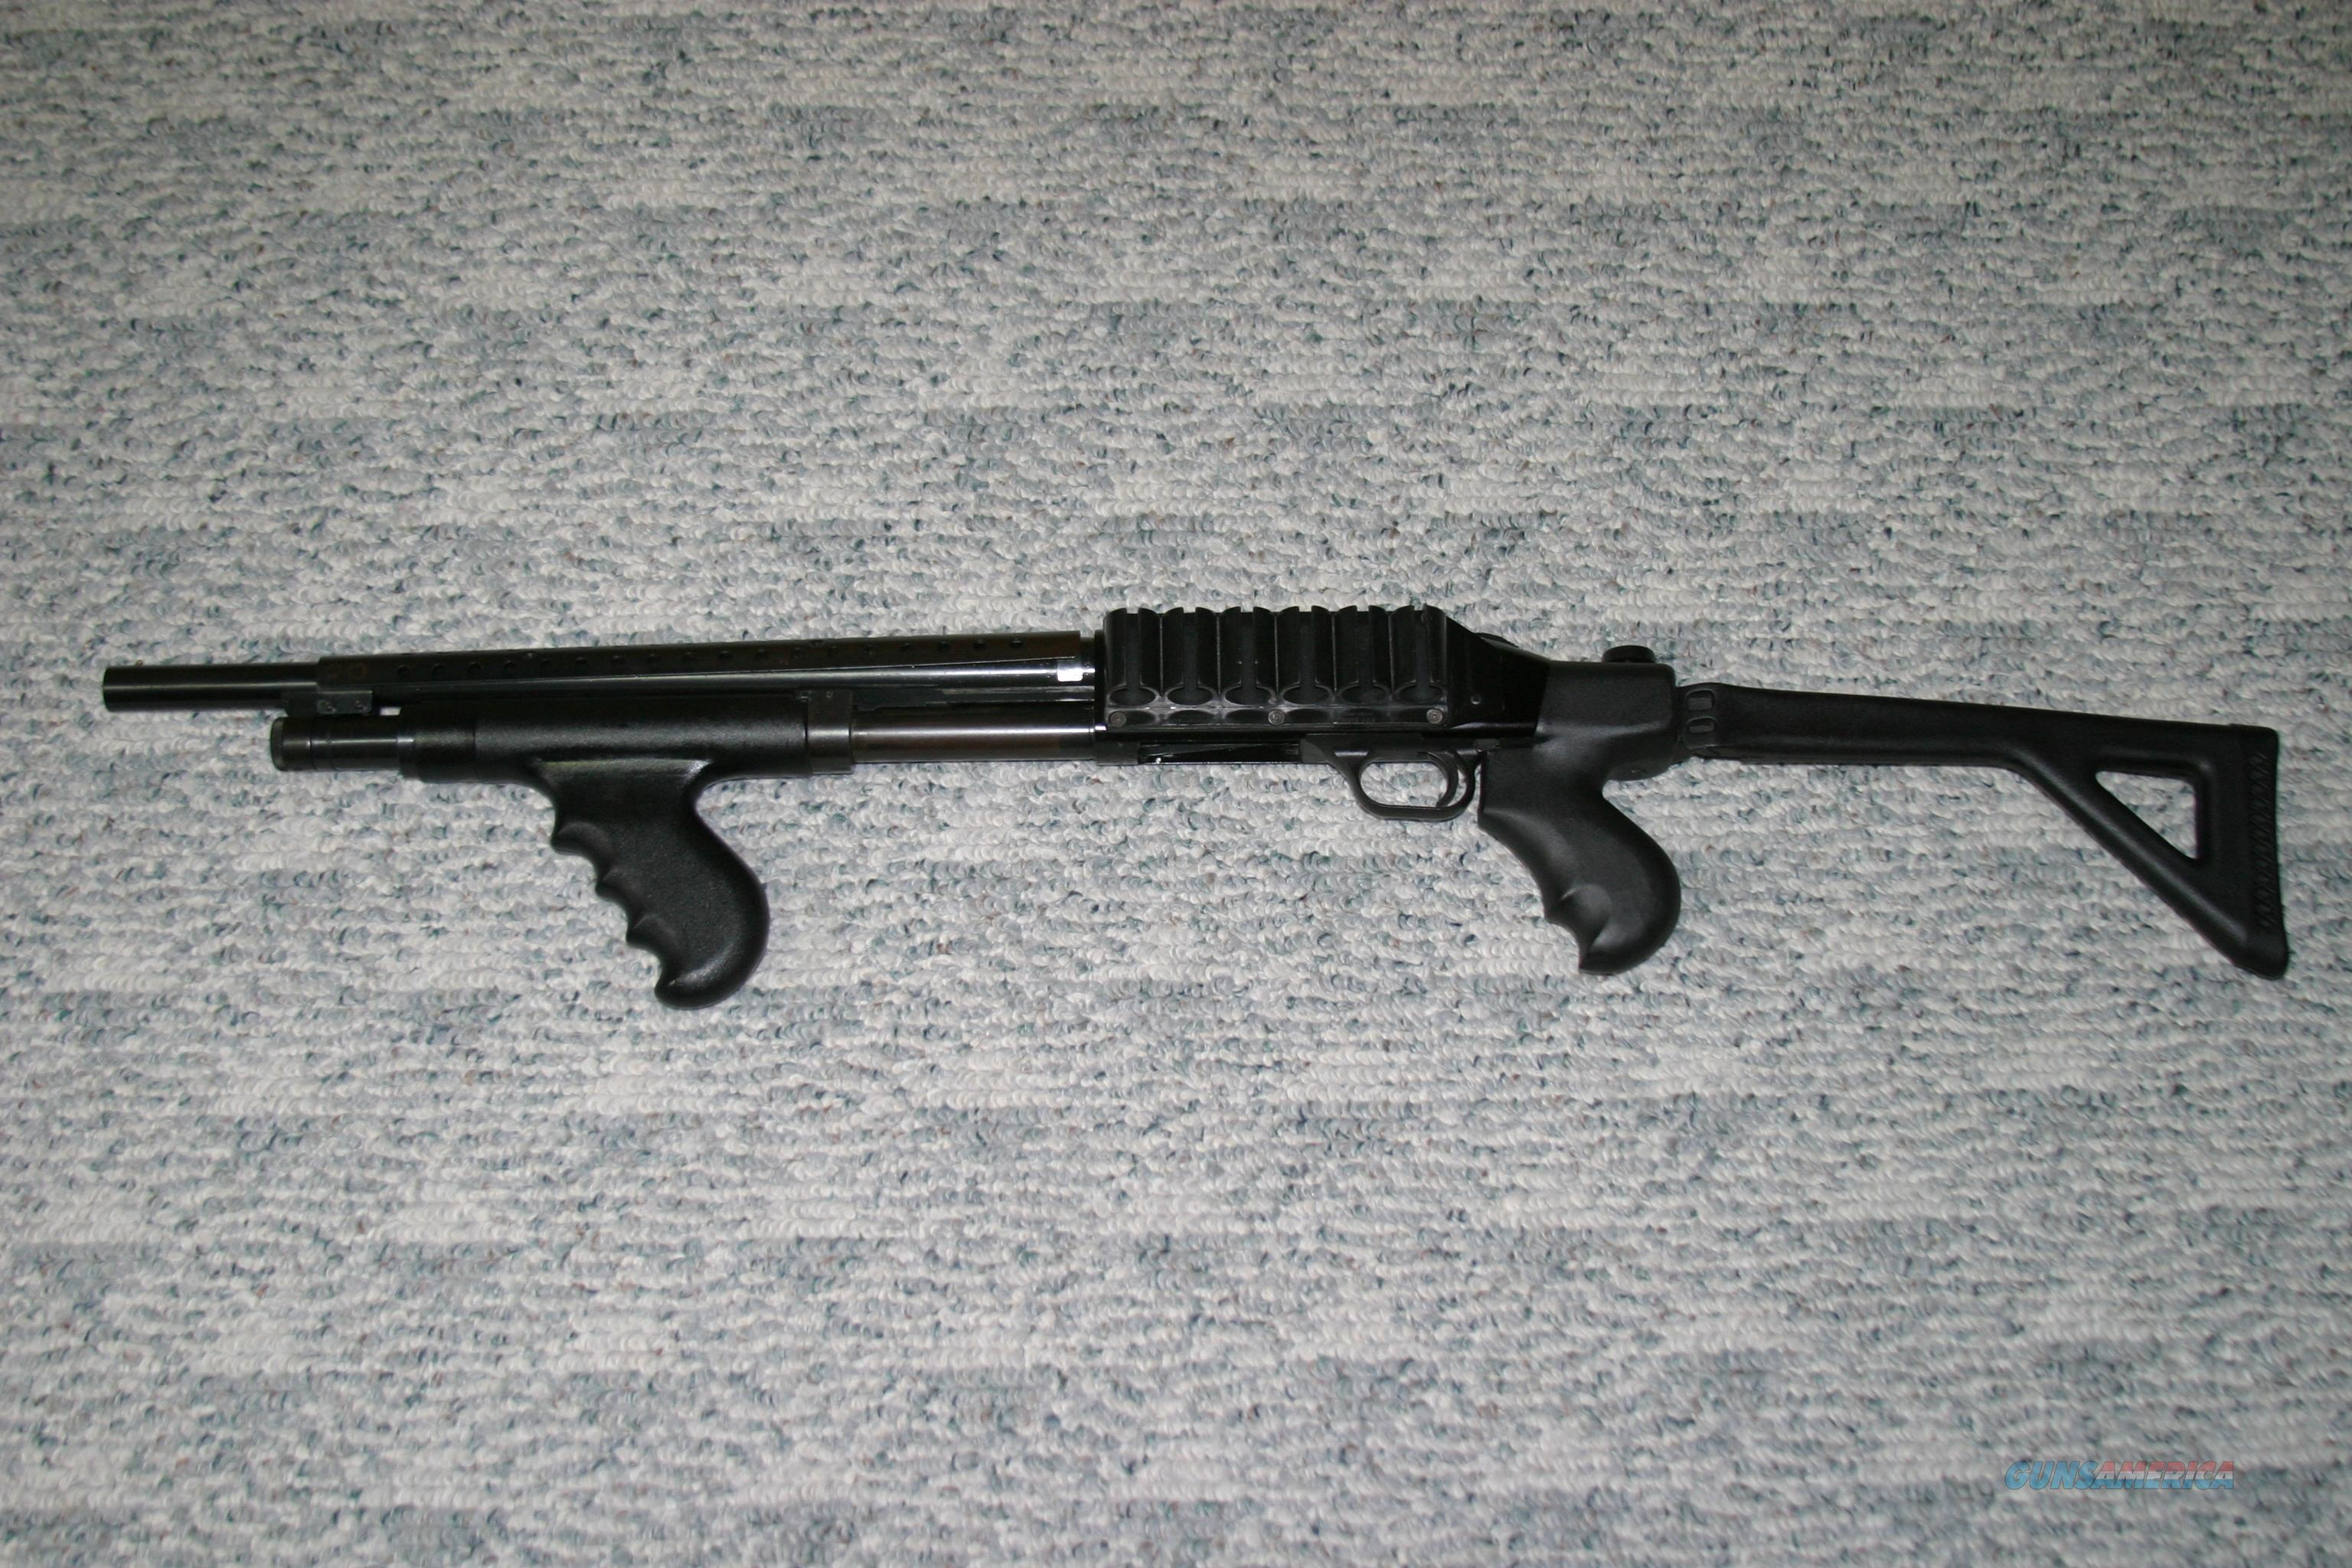 Mossberg 500 Dual Pistol Grip Shotgun with Folding Stock, Heat Shield and  Shell Holder